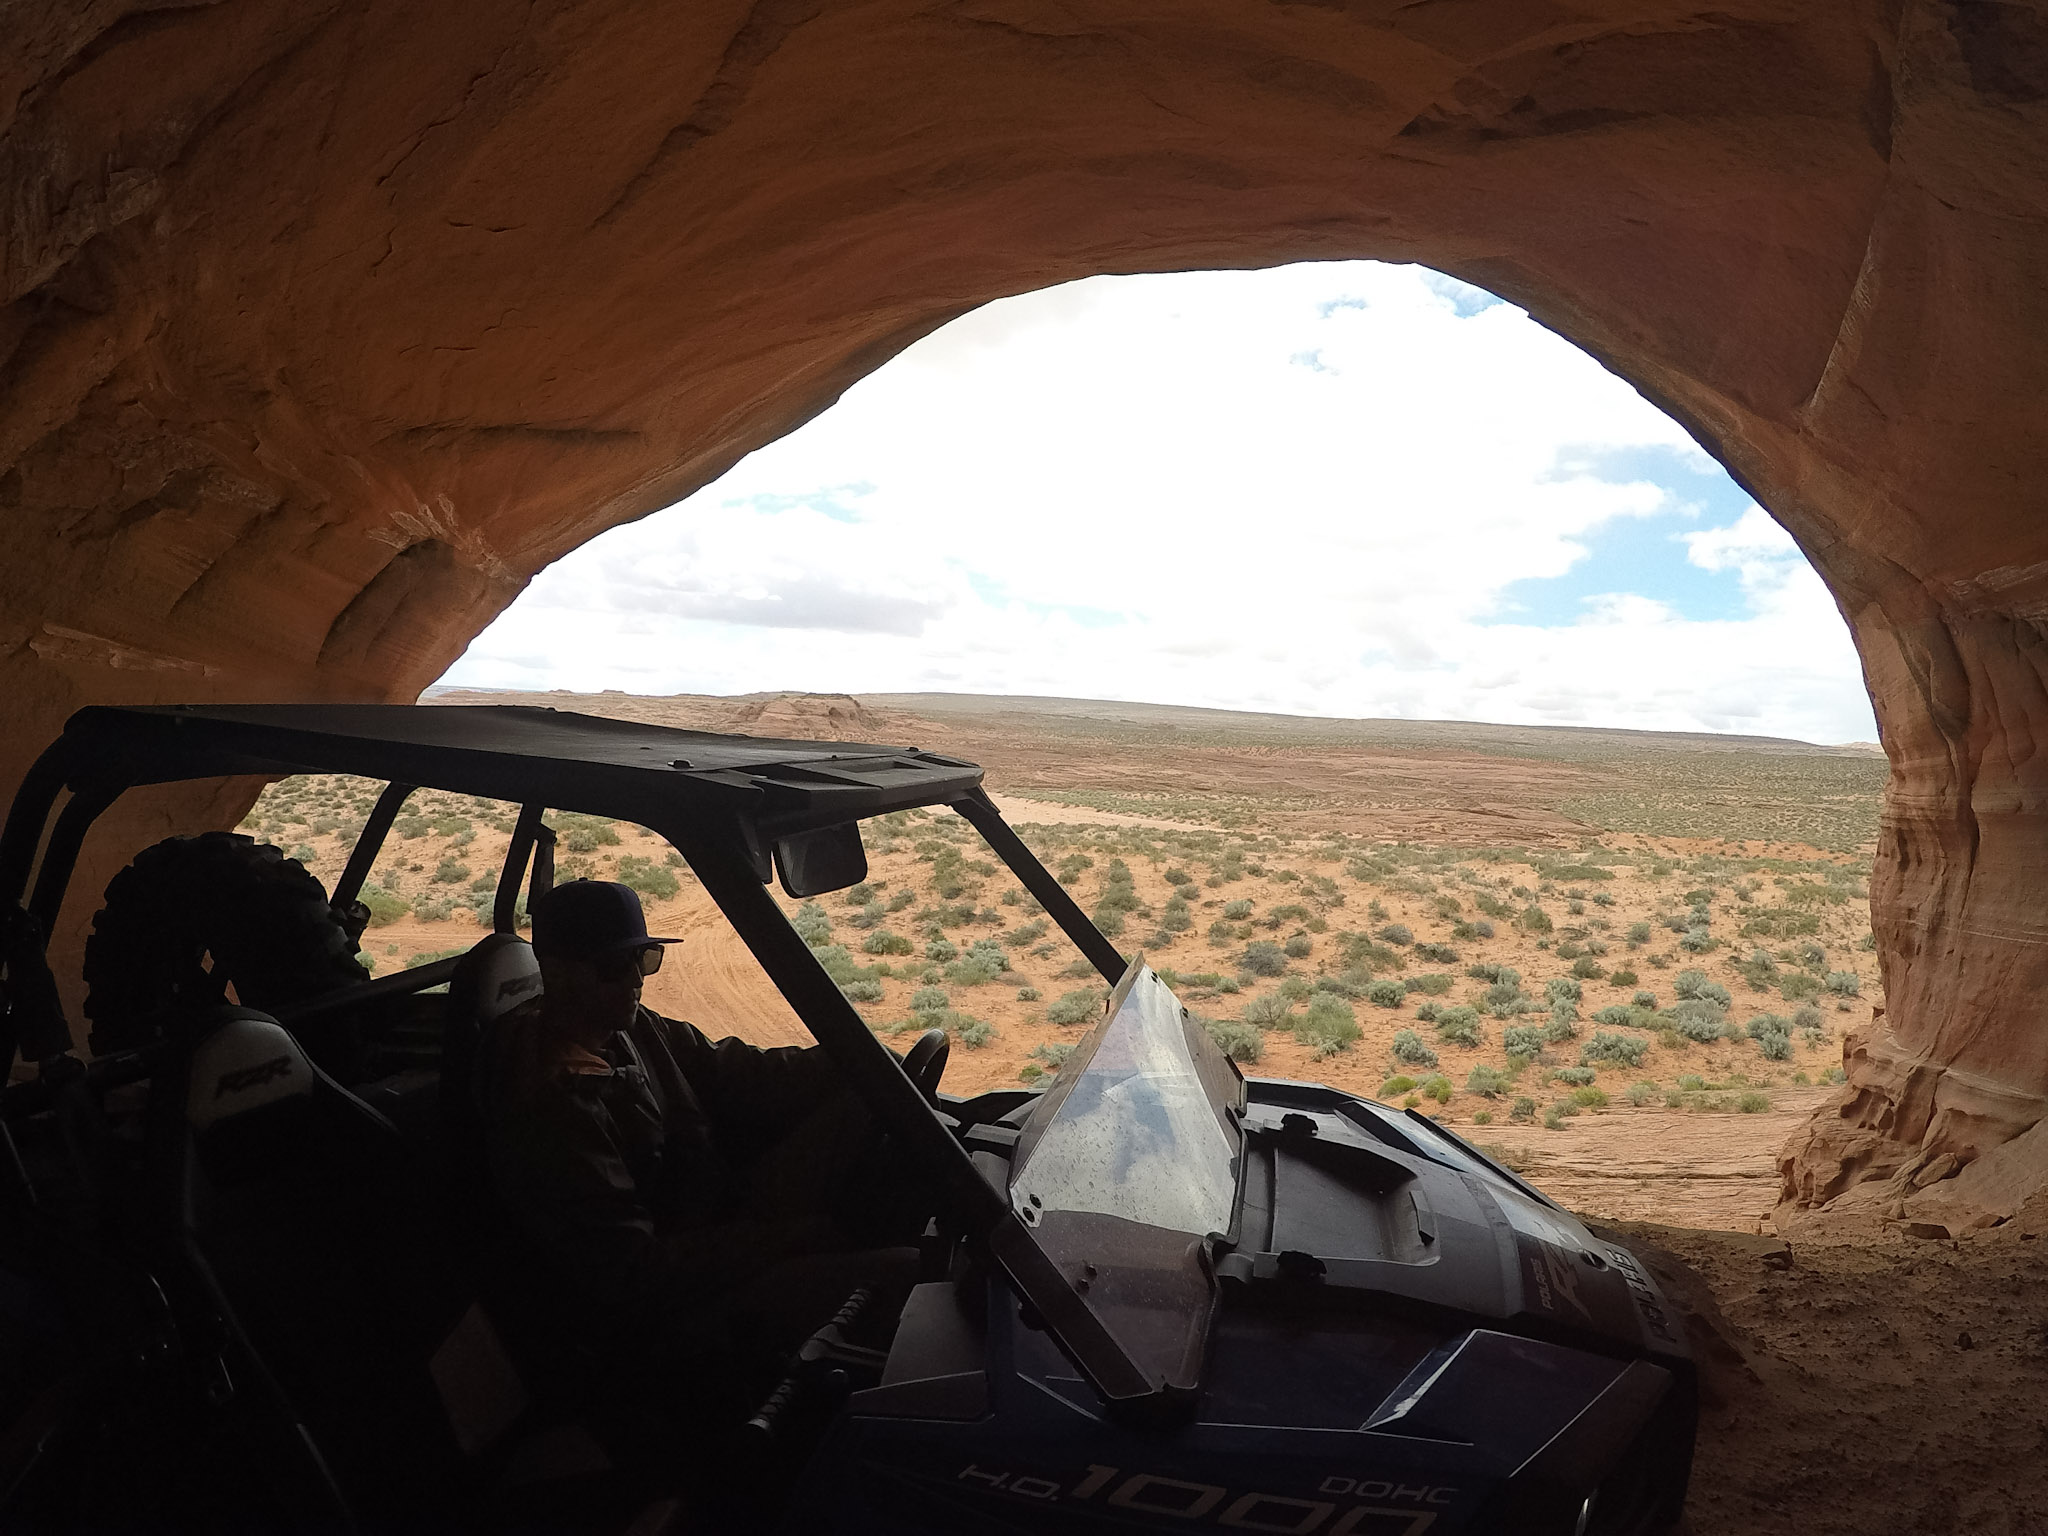 One of the largest caves that the razor could easily drive around in